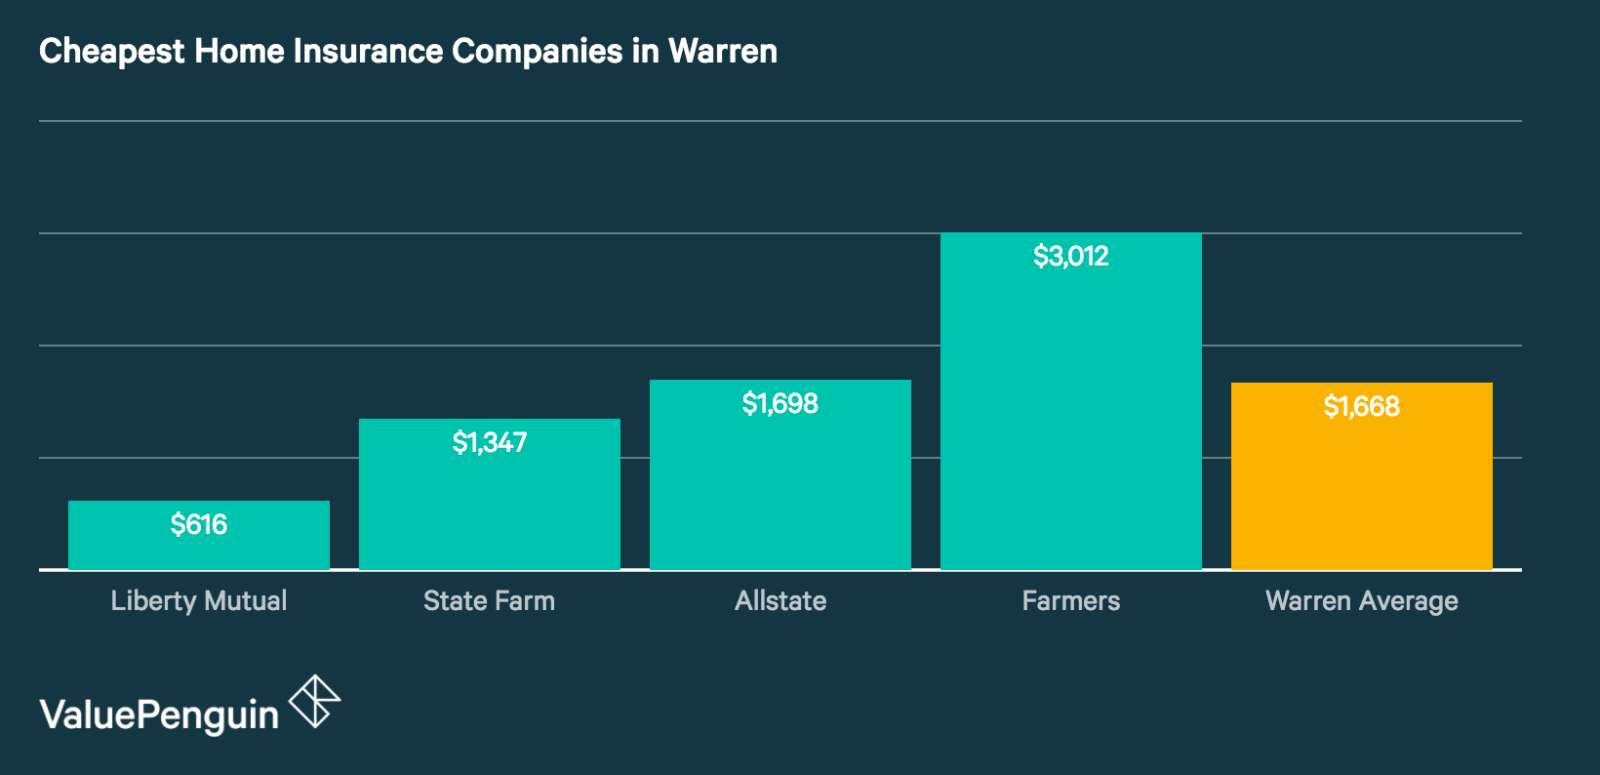 Quotes from Warren's Cheapest Home Insurance Companies